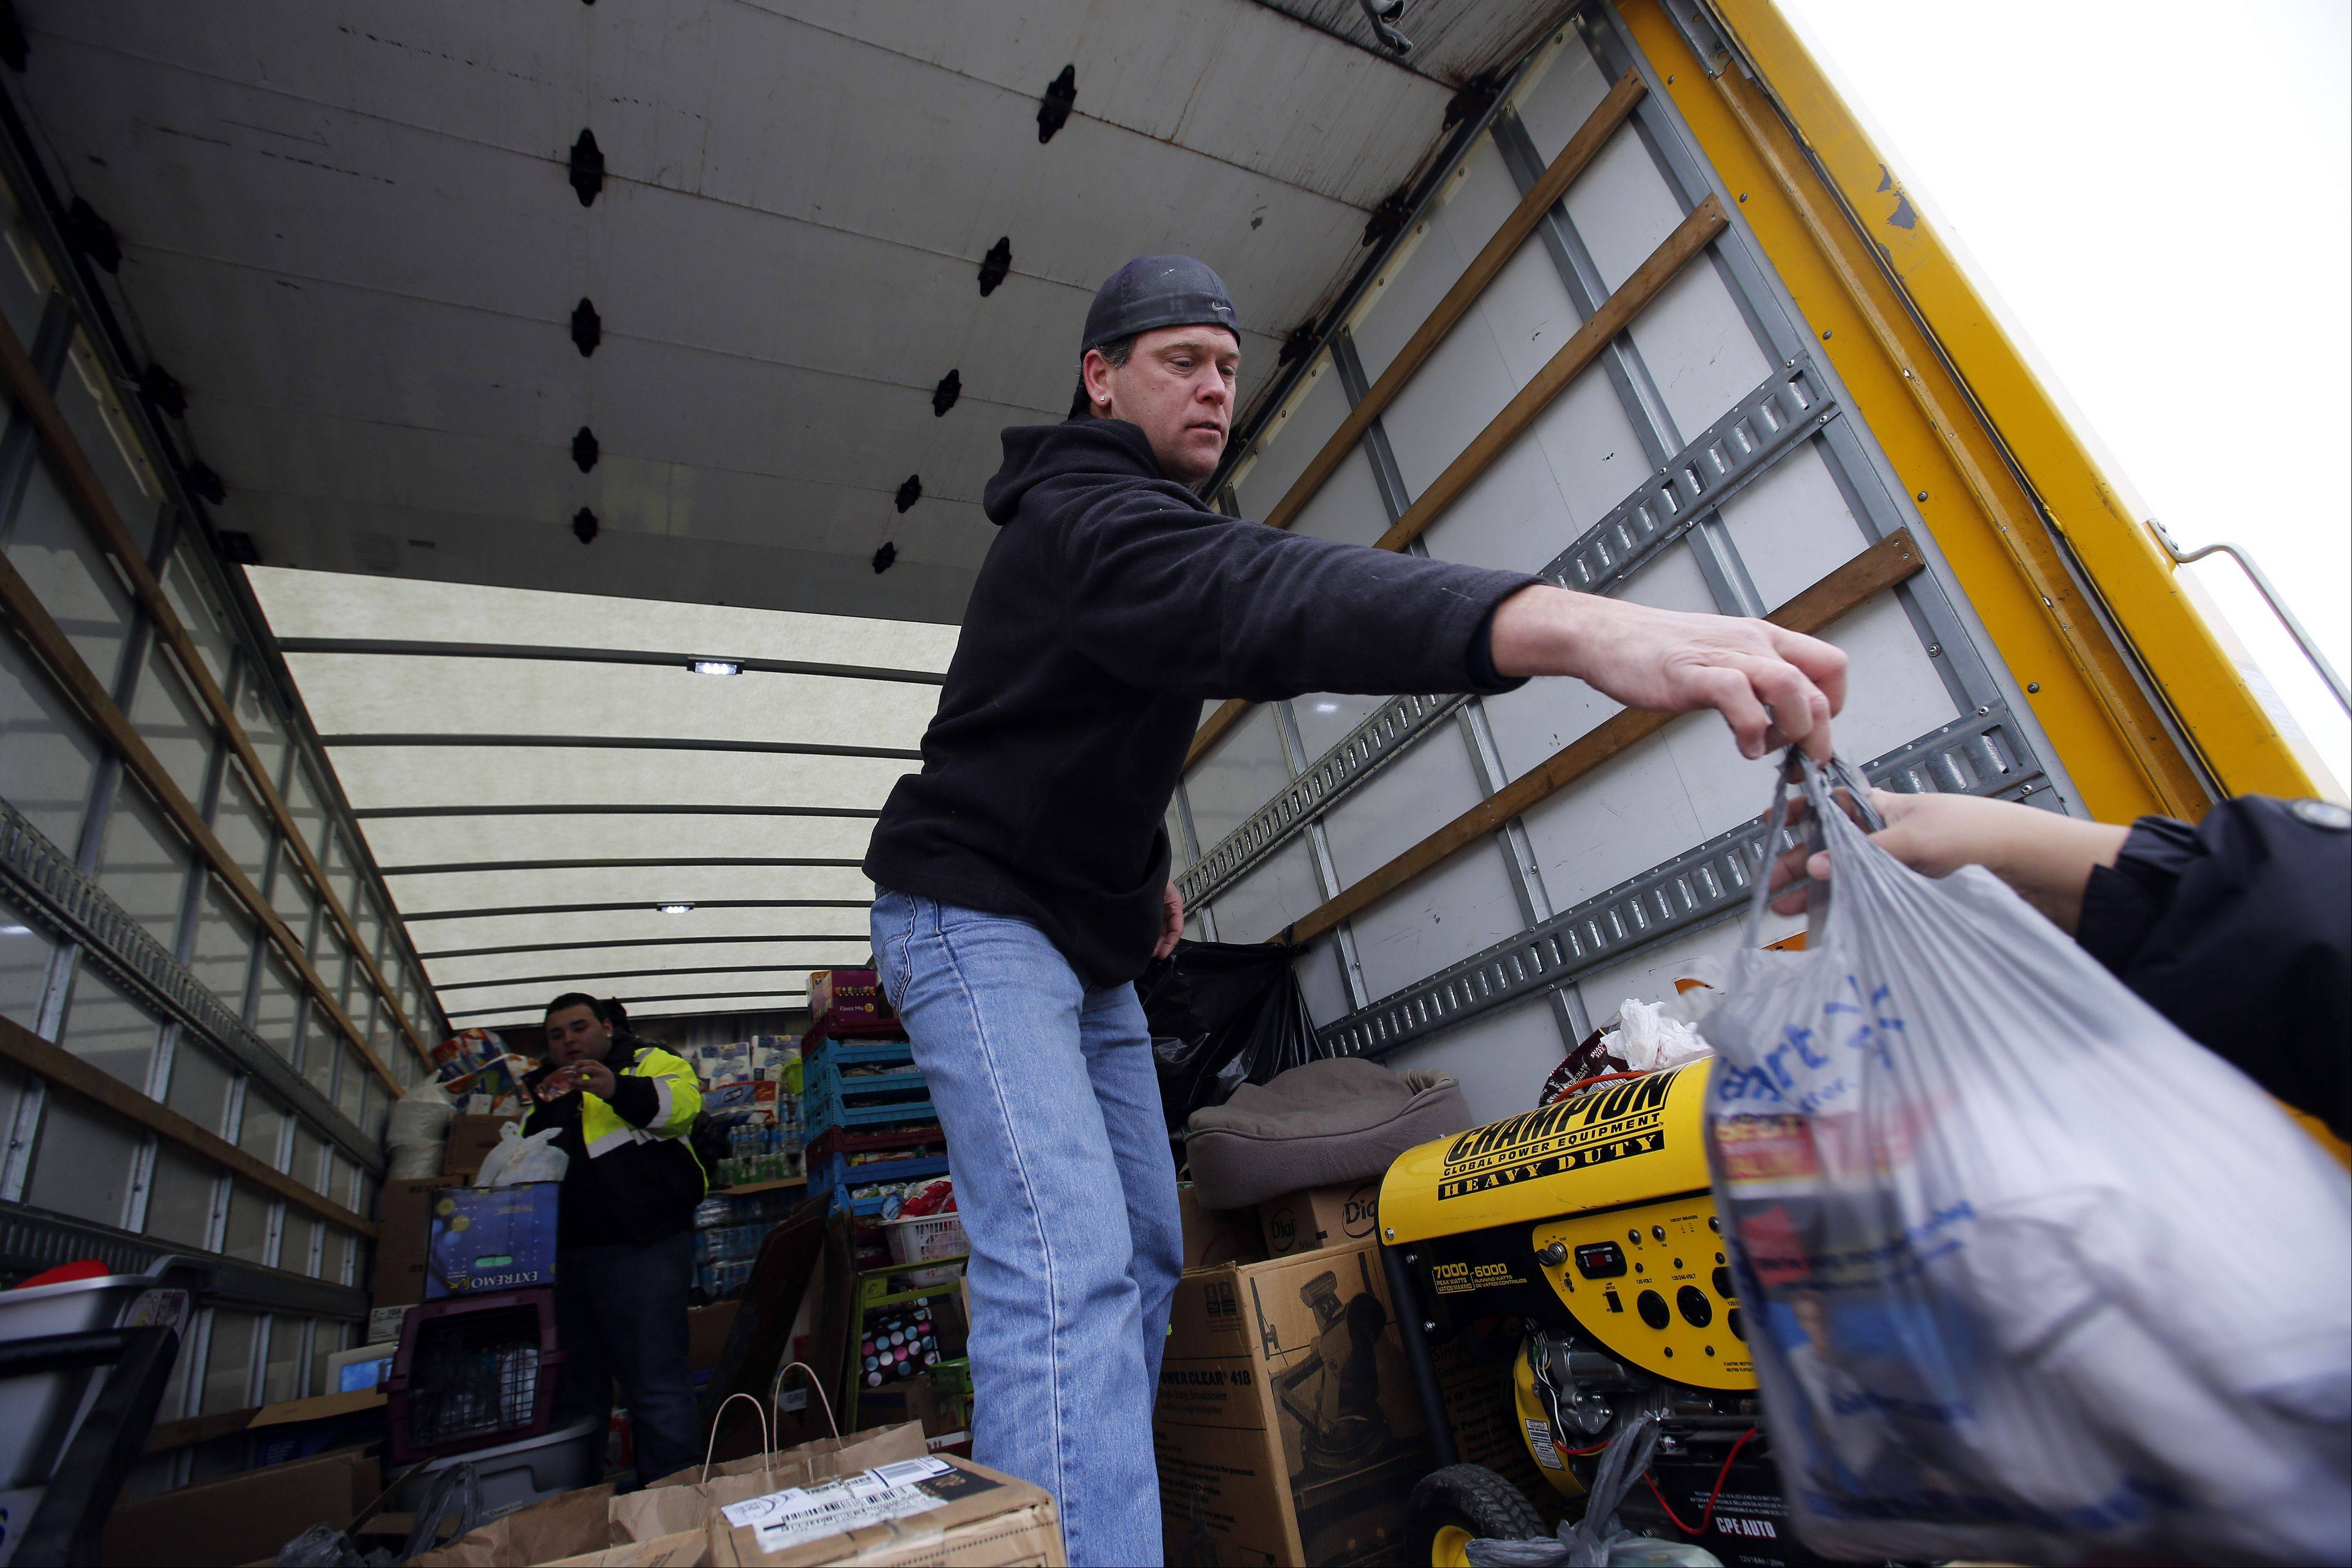 Craig Consoer of Lake in the Hills helps load a truck bound for Washington, Ill., with donations from the area.